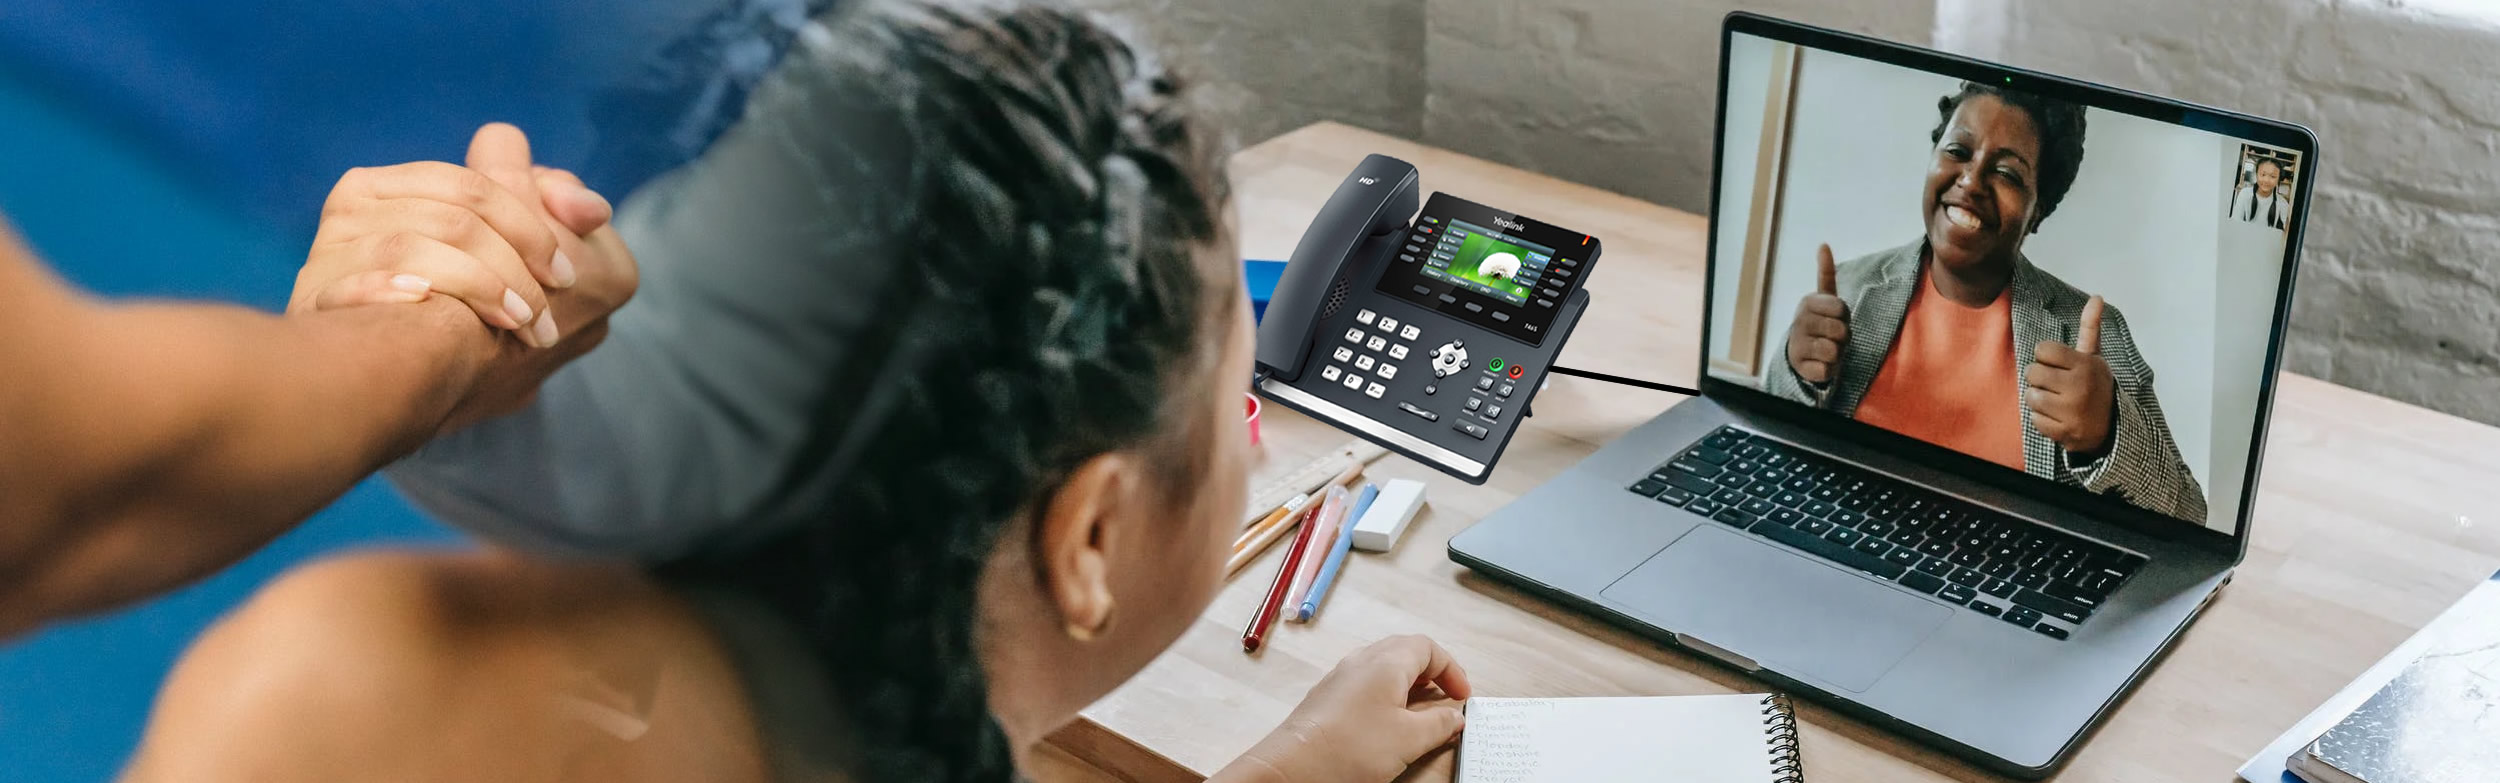 VOIP training and Support in Wales